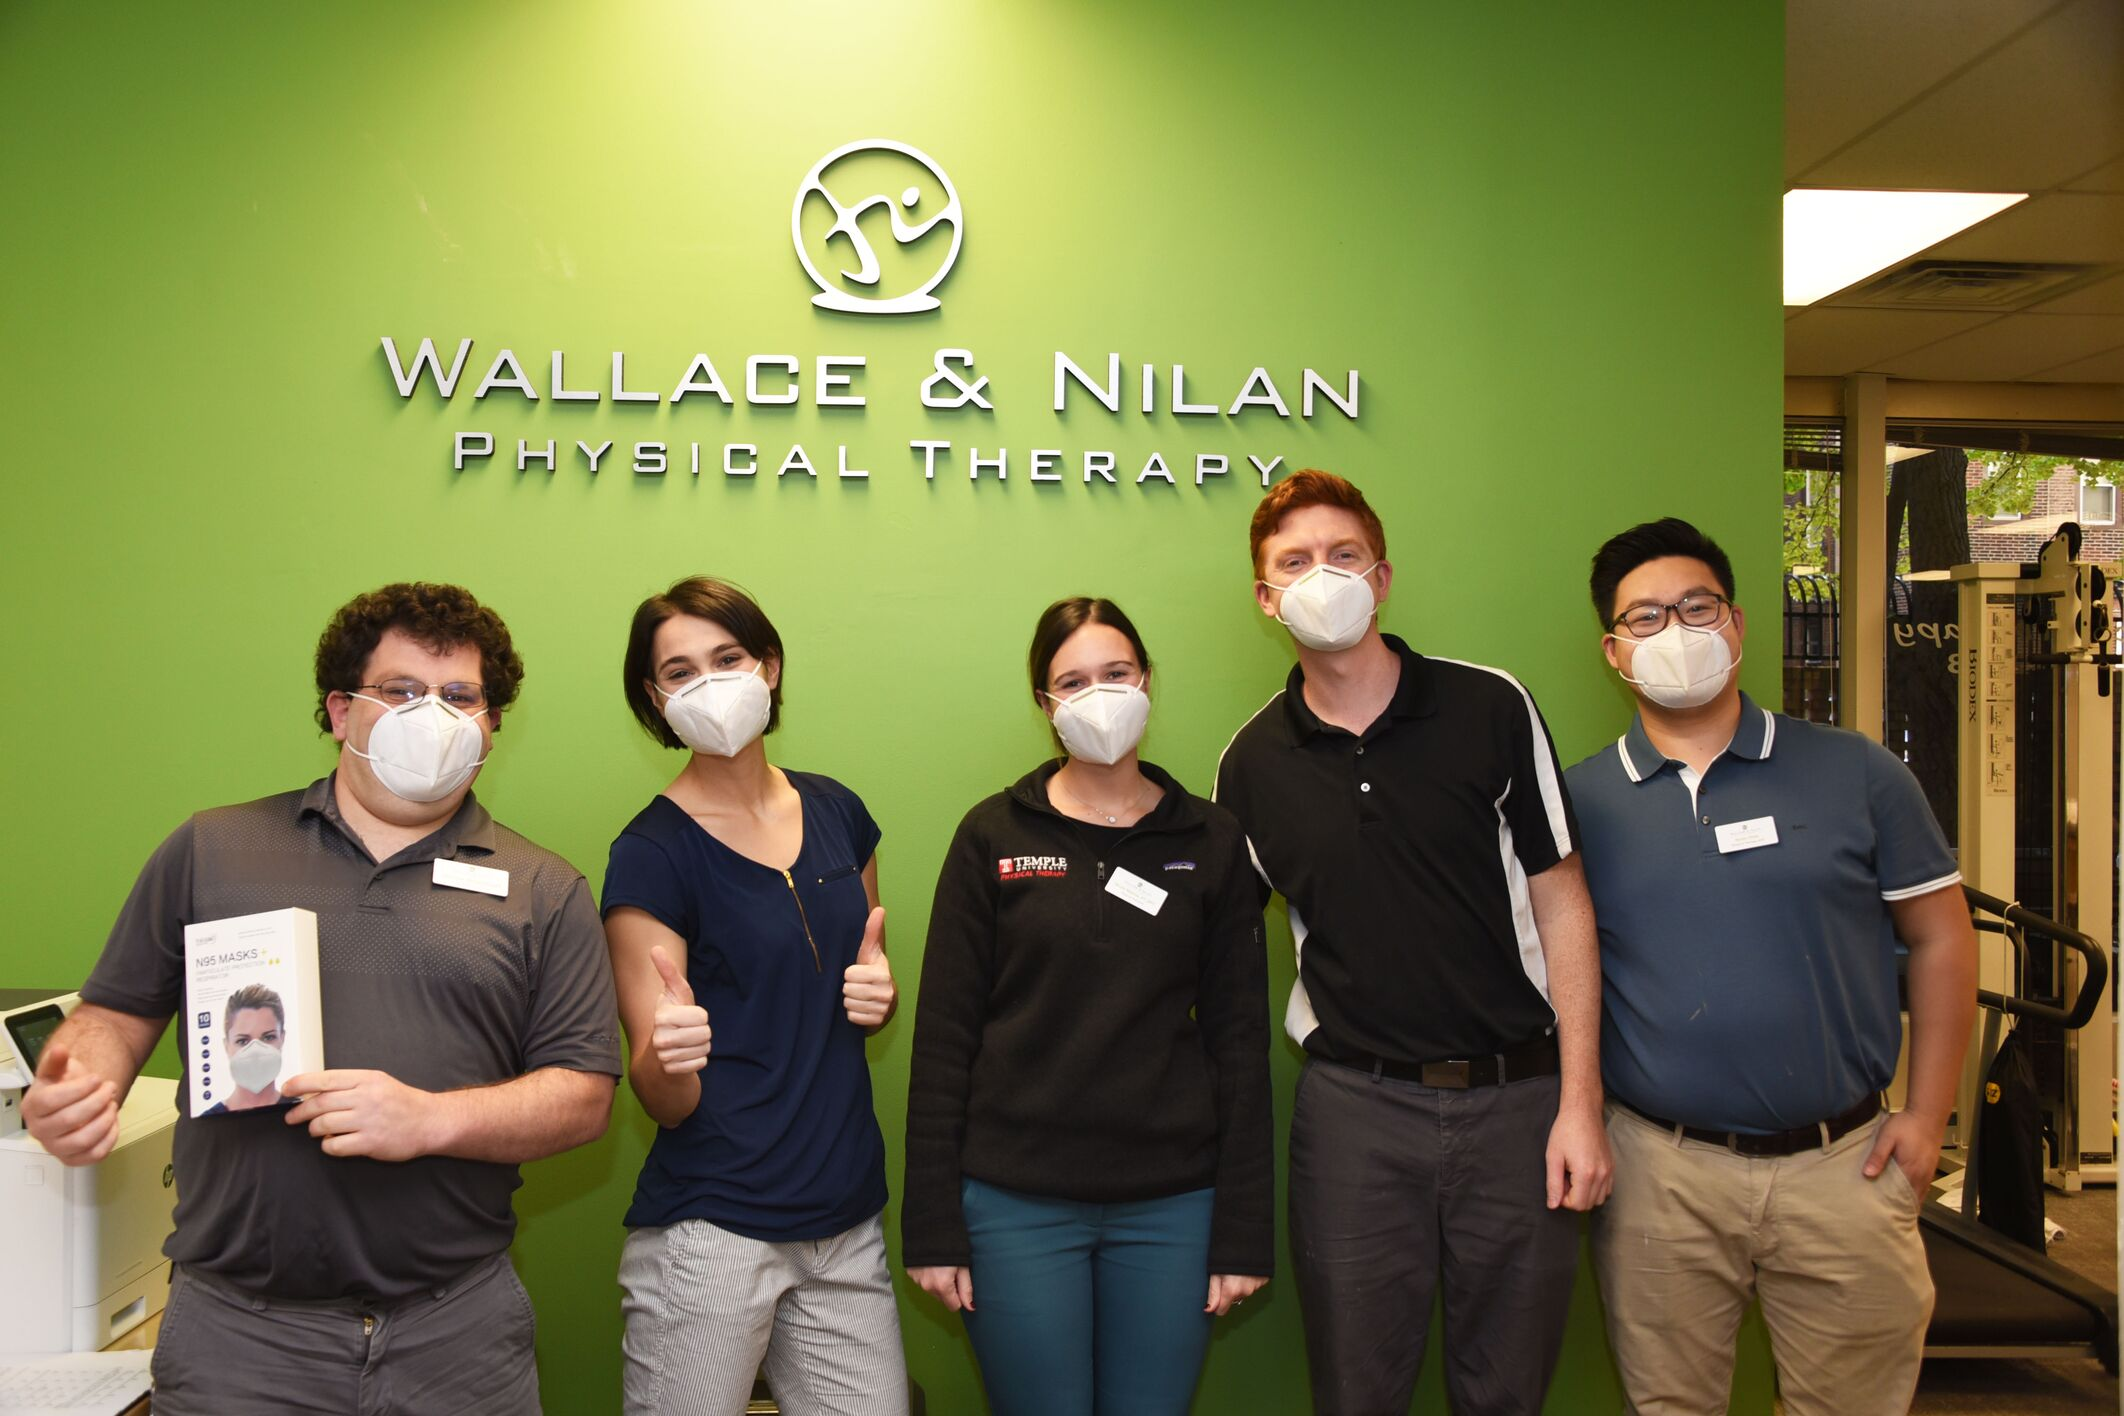 Image of staff at Wallace & Nilan PT wearing personal protective masks from Independence